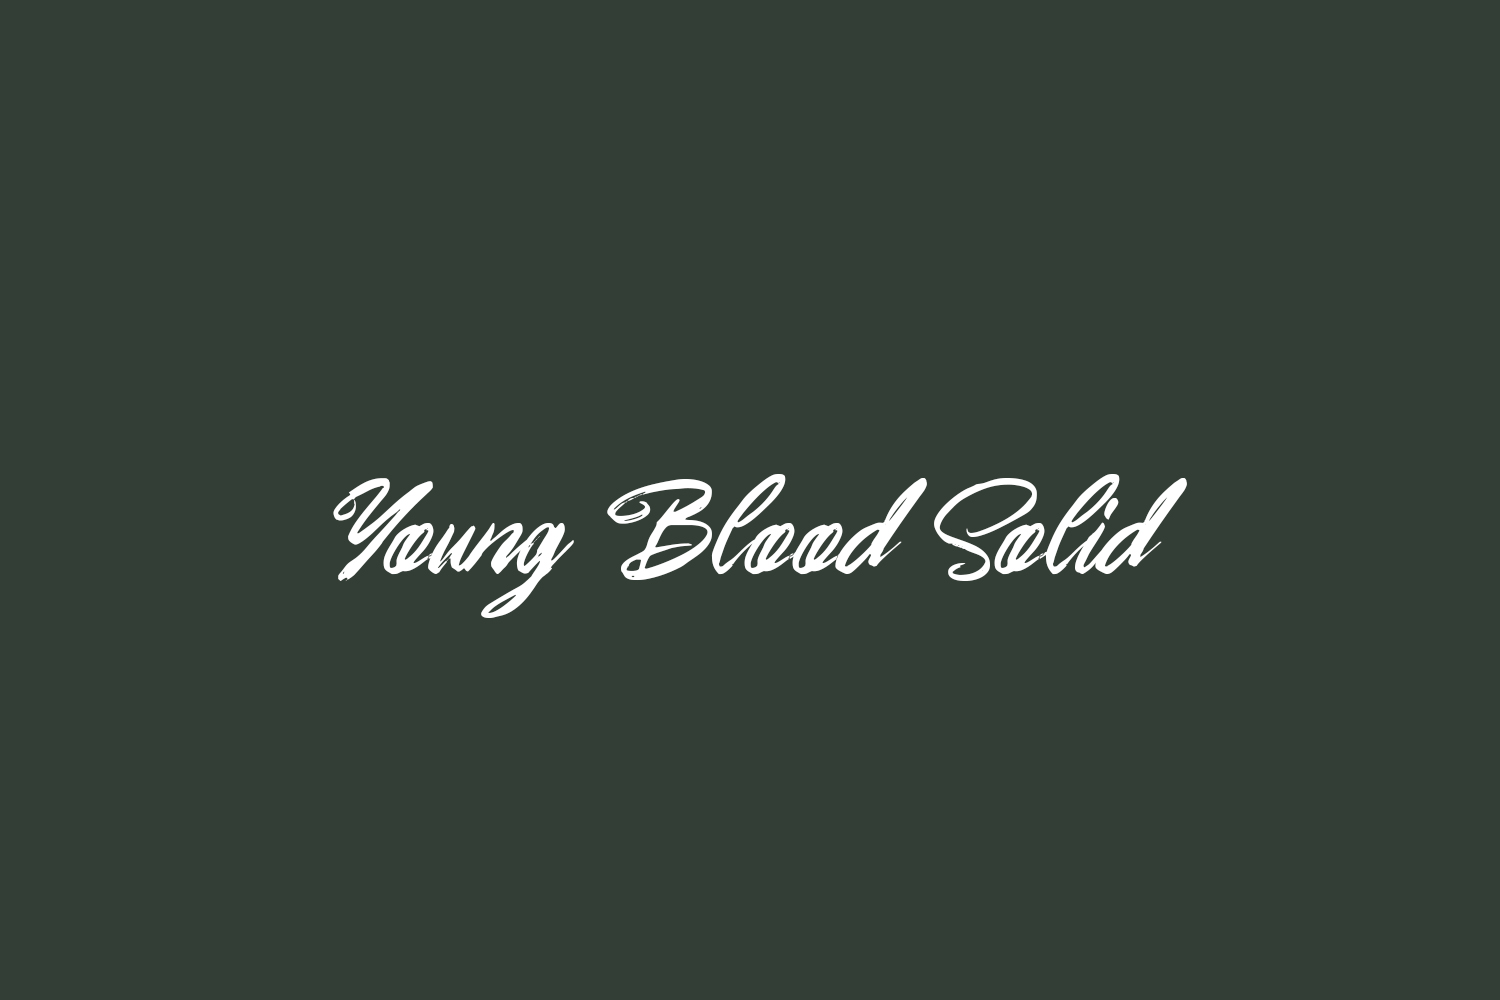 Young Blood Solid Free Font